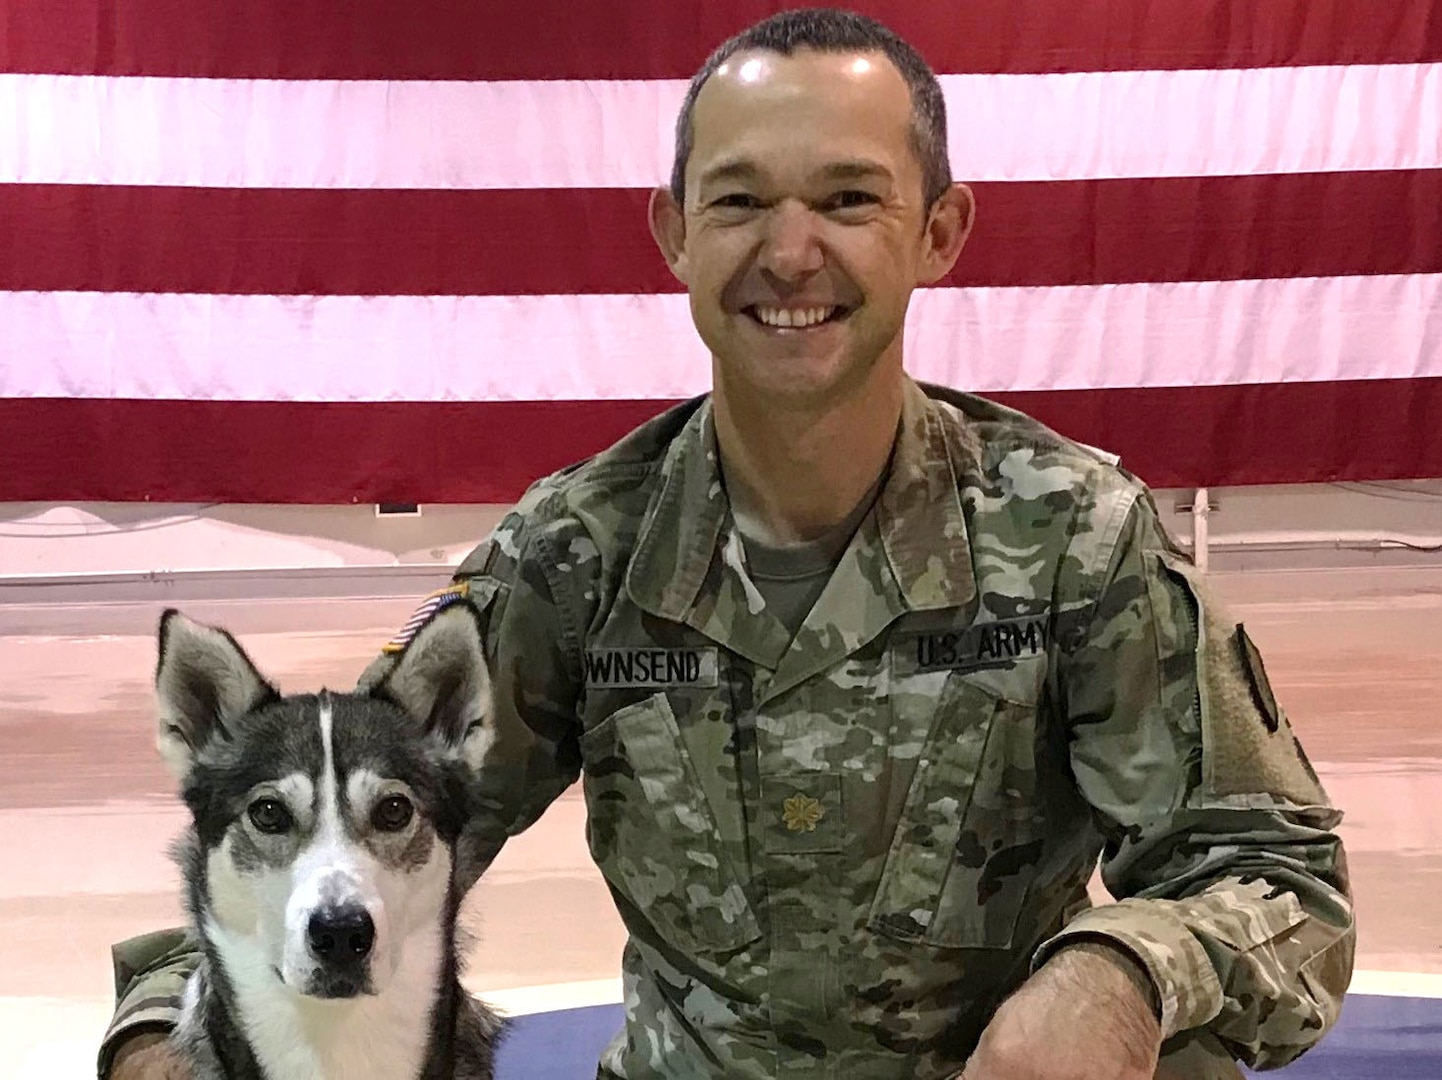 Maj. Troy Townsend, director of behavioral health, office of the state surgeon, New Hampshire Army National Guard, poses with therapy dog Cache Aug. 13, 2019. Cache, a 9-year-old retired sled dog, travels with Townsend across New Hampshire to meet Guard members.